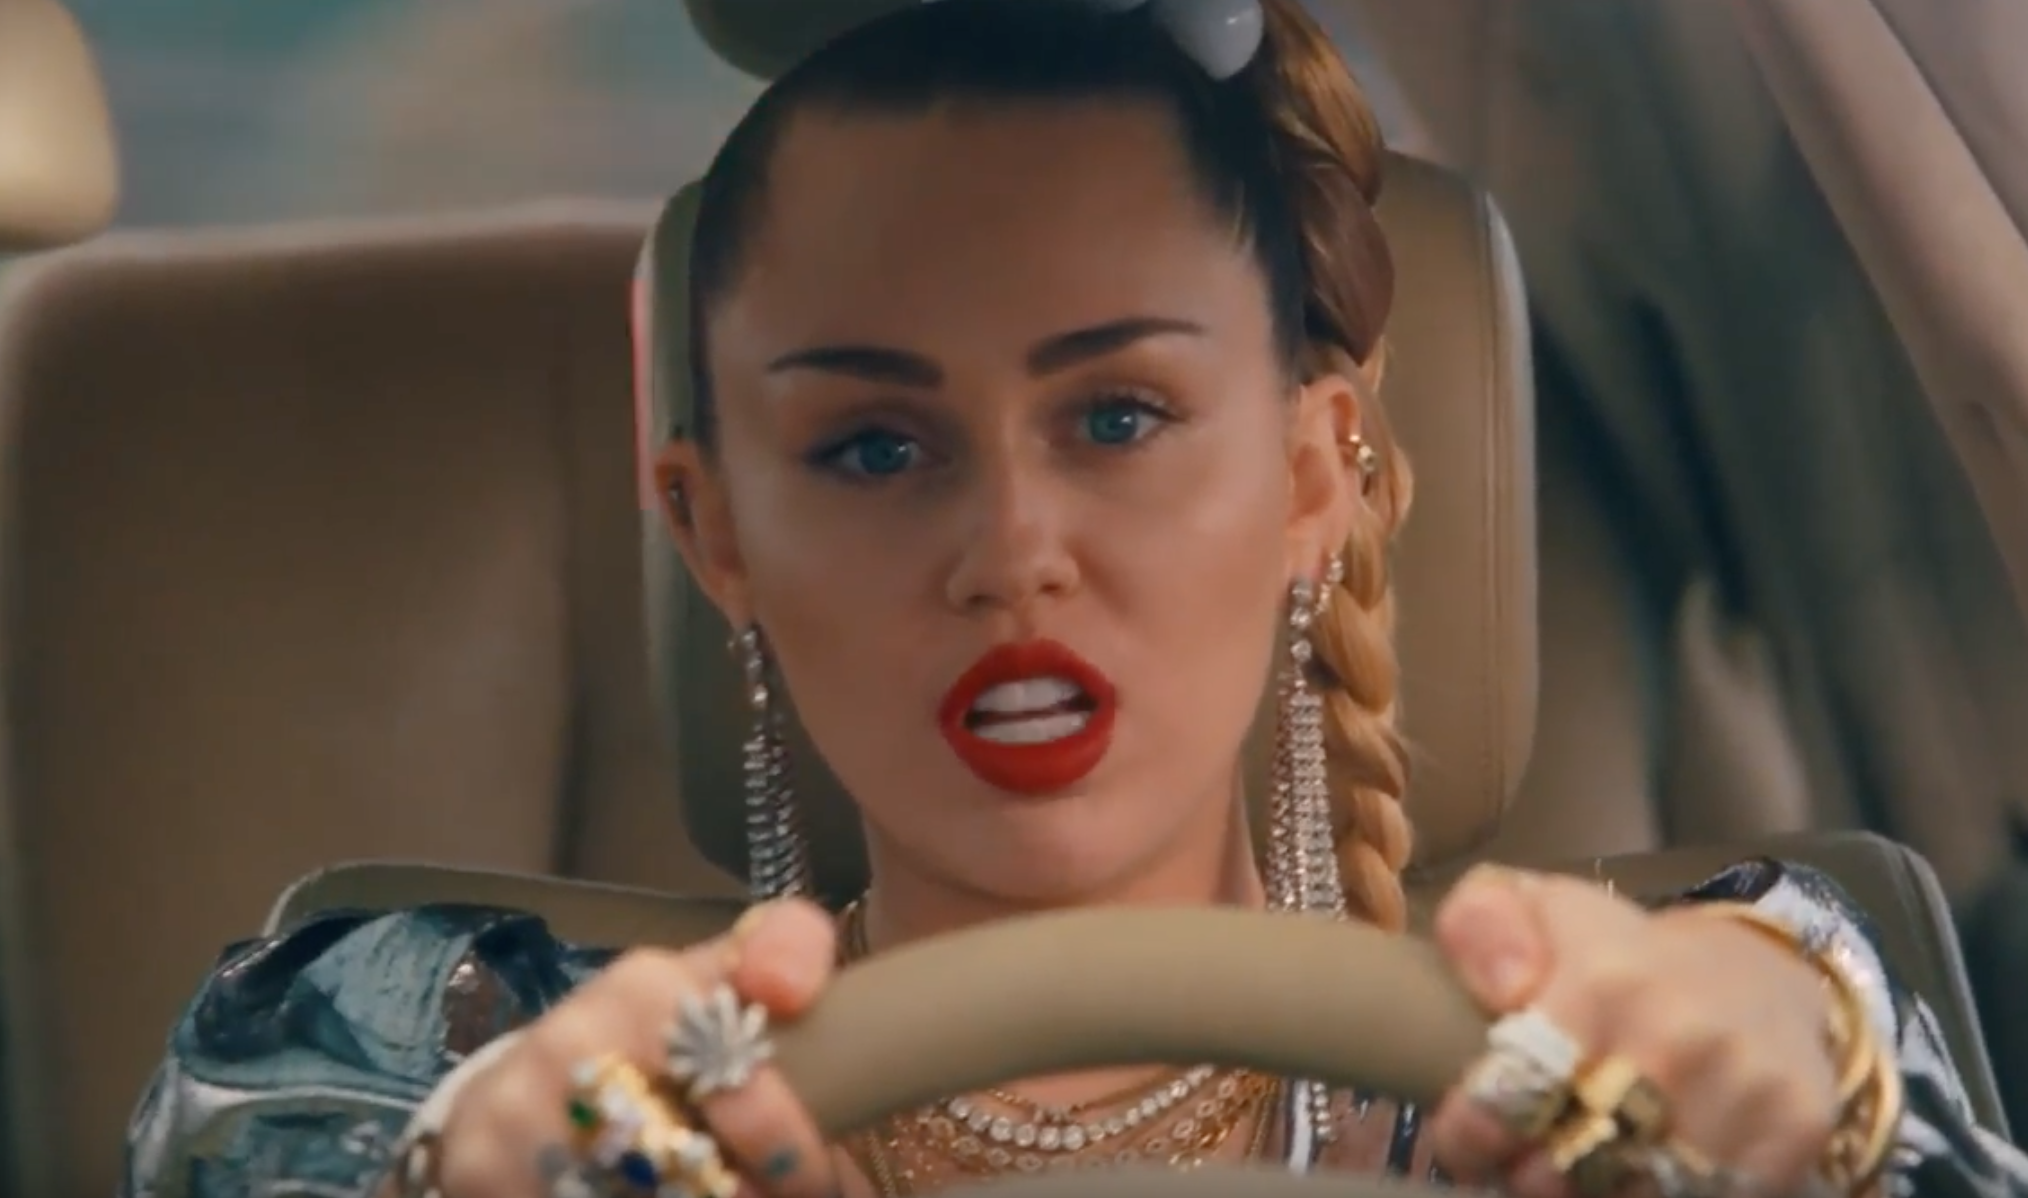 Mark Ronson & Miley Cyrus Team Up On New Song: Listen - Stereogum